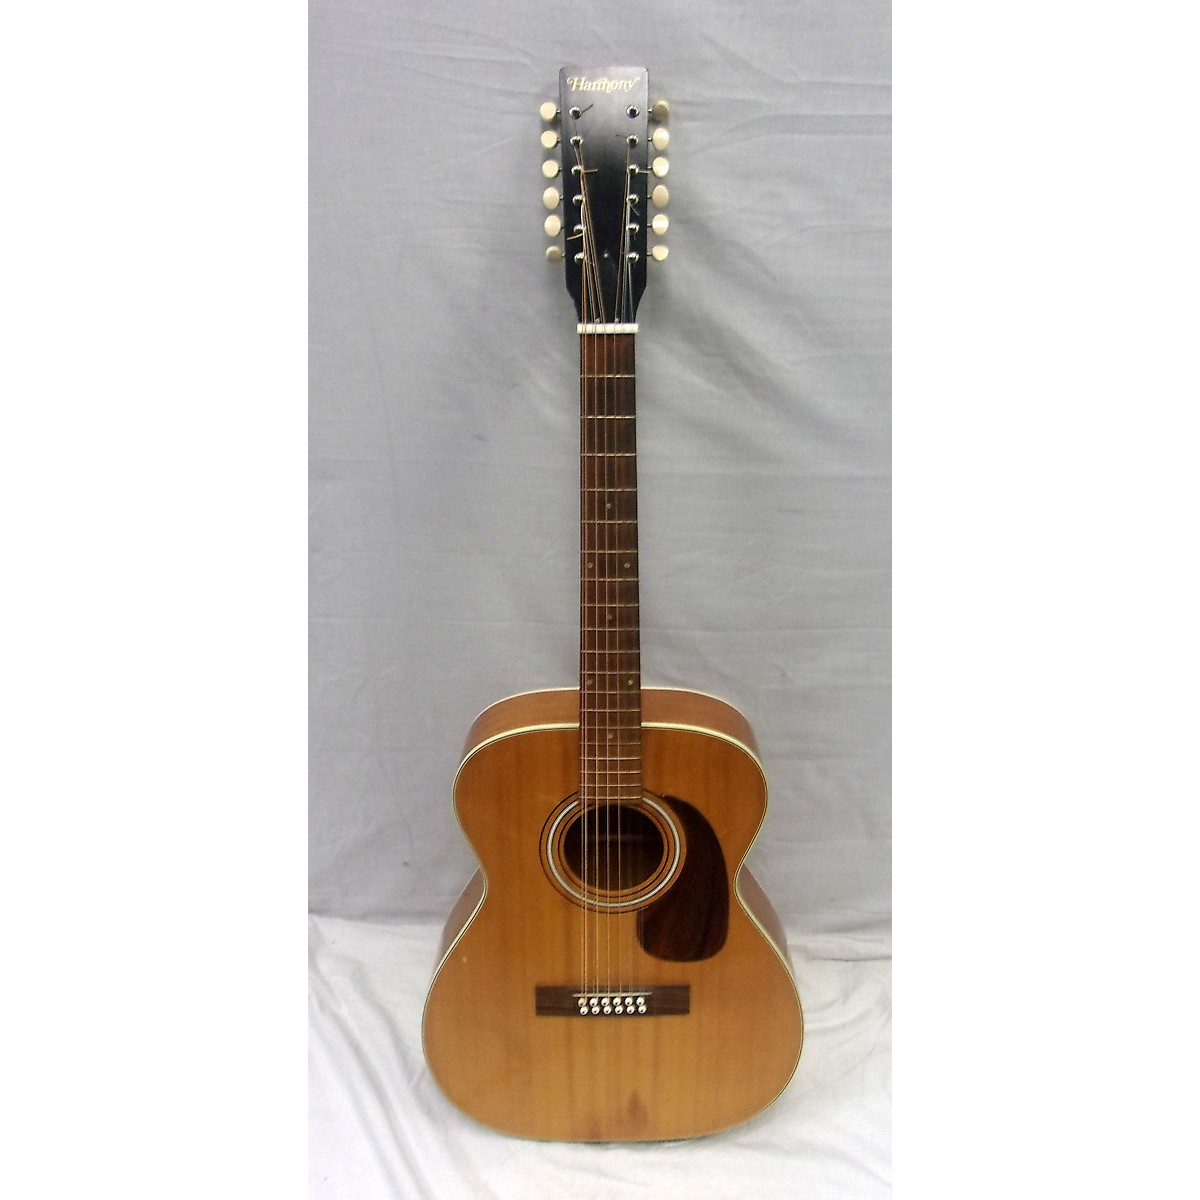 Harmony 1960s H1233 12 String Acoustic Guitar